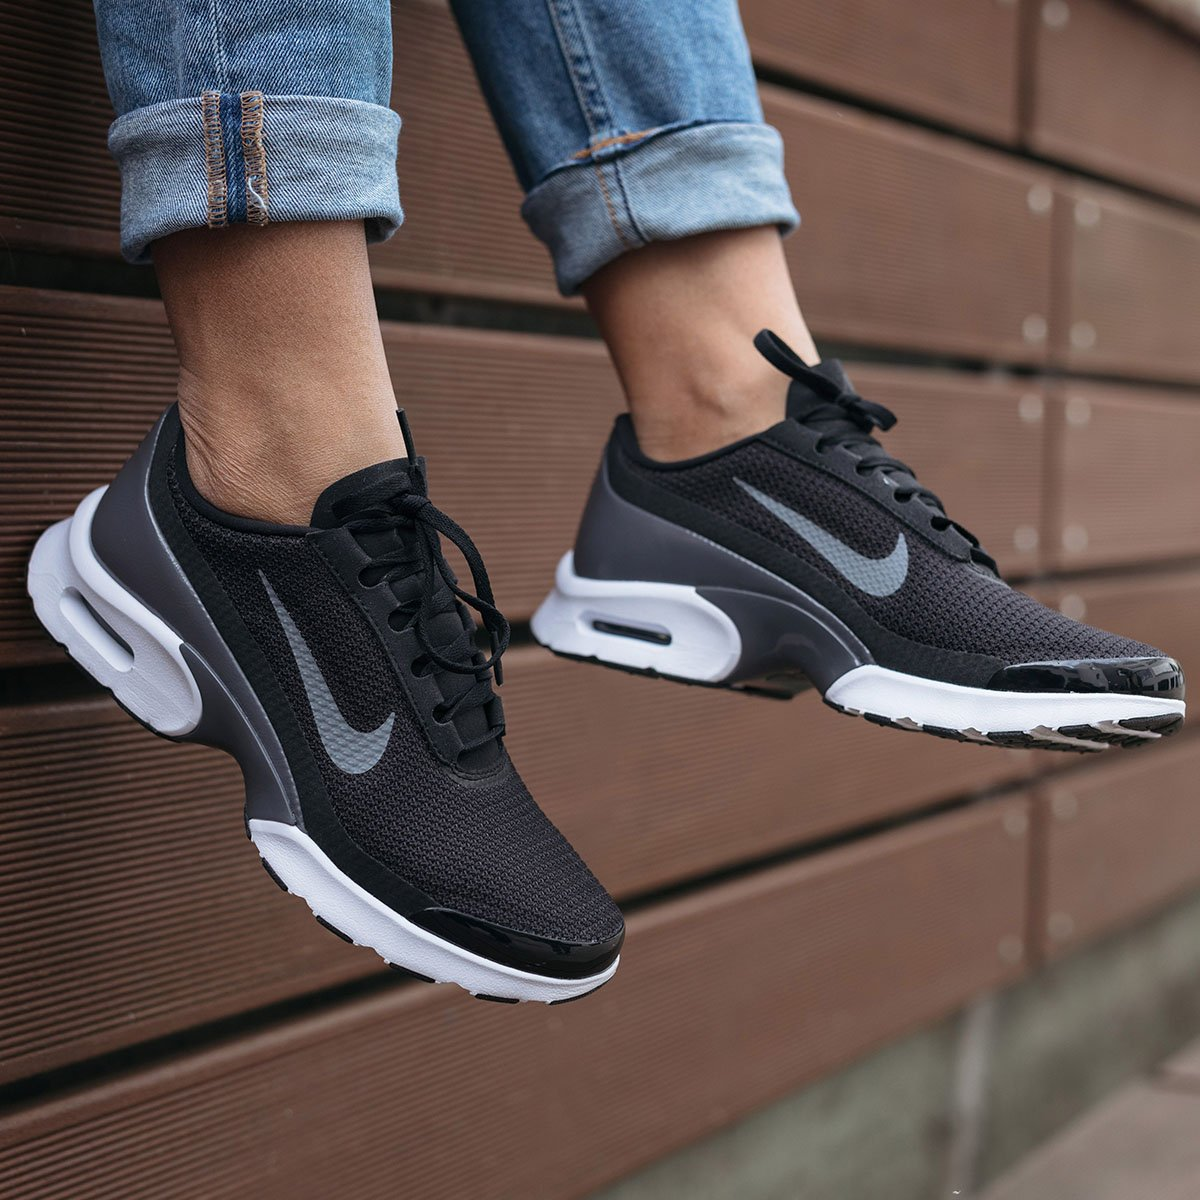 Nike Air Max Jewell. #airmax #approved